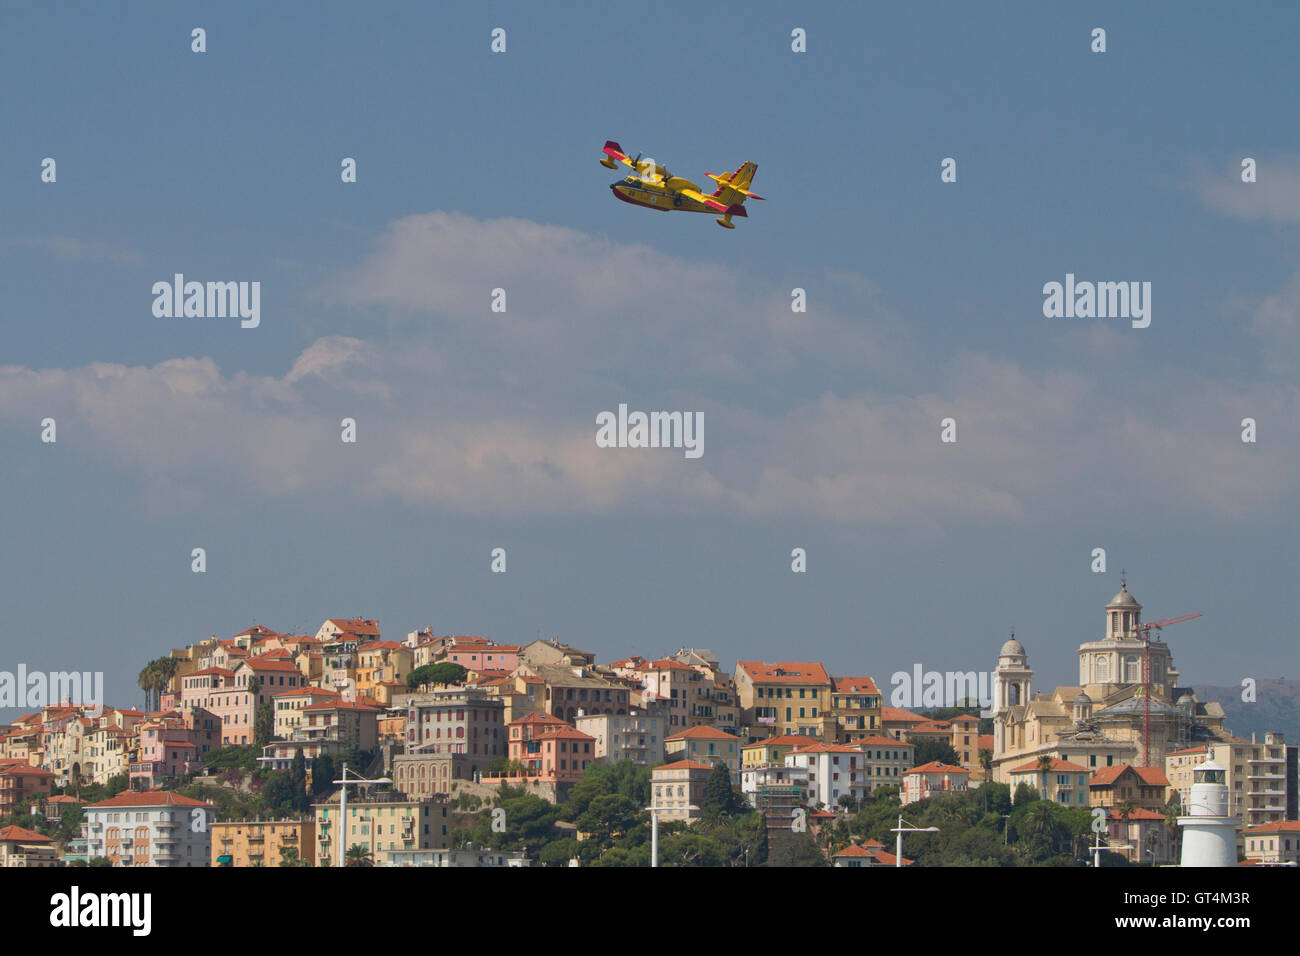 Imperia, Italy. 8th September 2016. A water bomber aircraft Bombardier 415 (Canadair) flyes over Imperia (Italy) - Stock Image